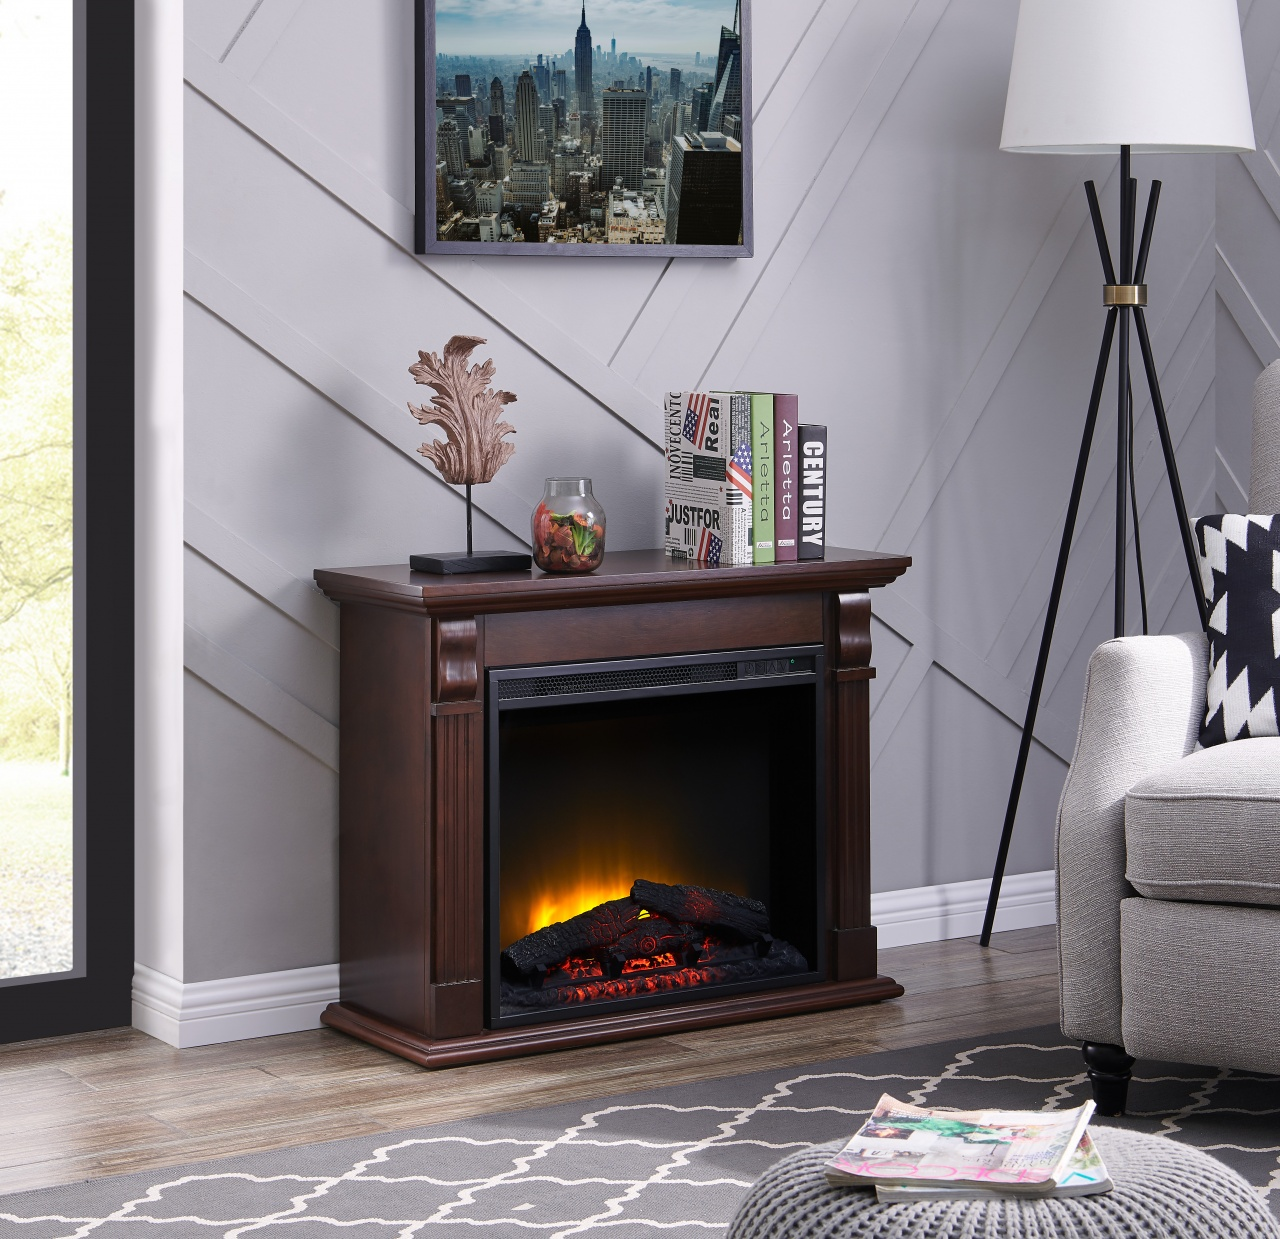 wall mounted electric fireplace design ideas decorating exciting indoor fireplaces design by using from wall mounted electric fireplace design ideas